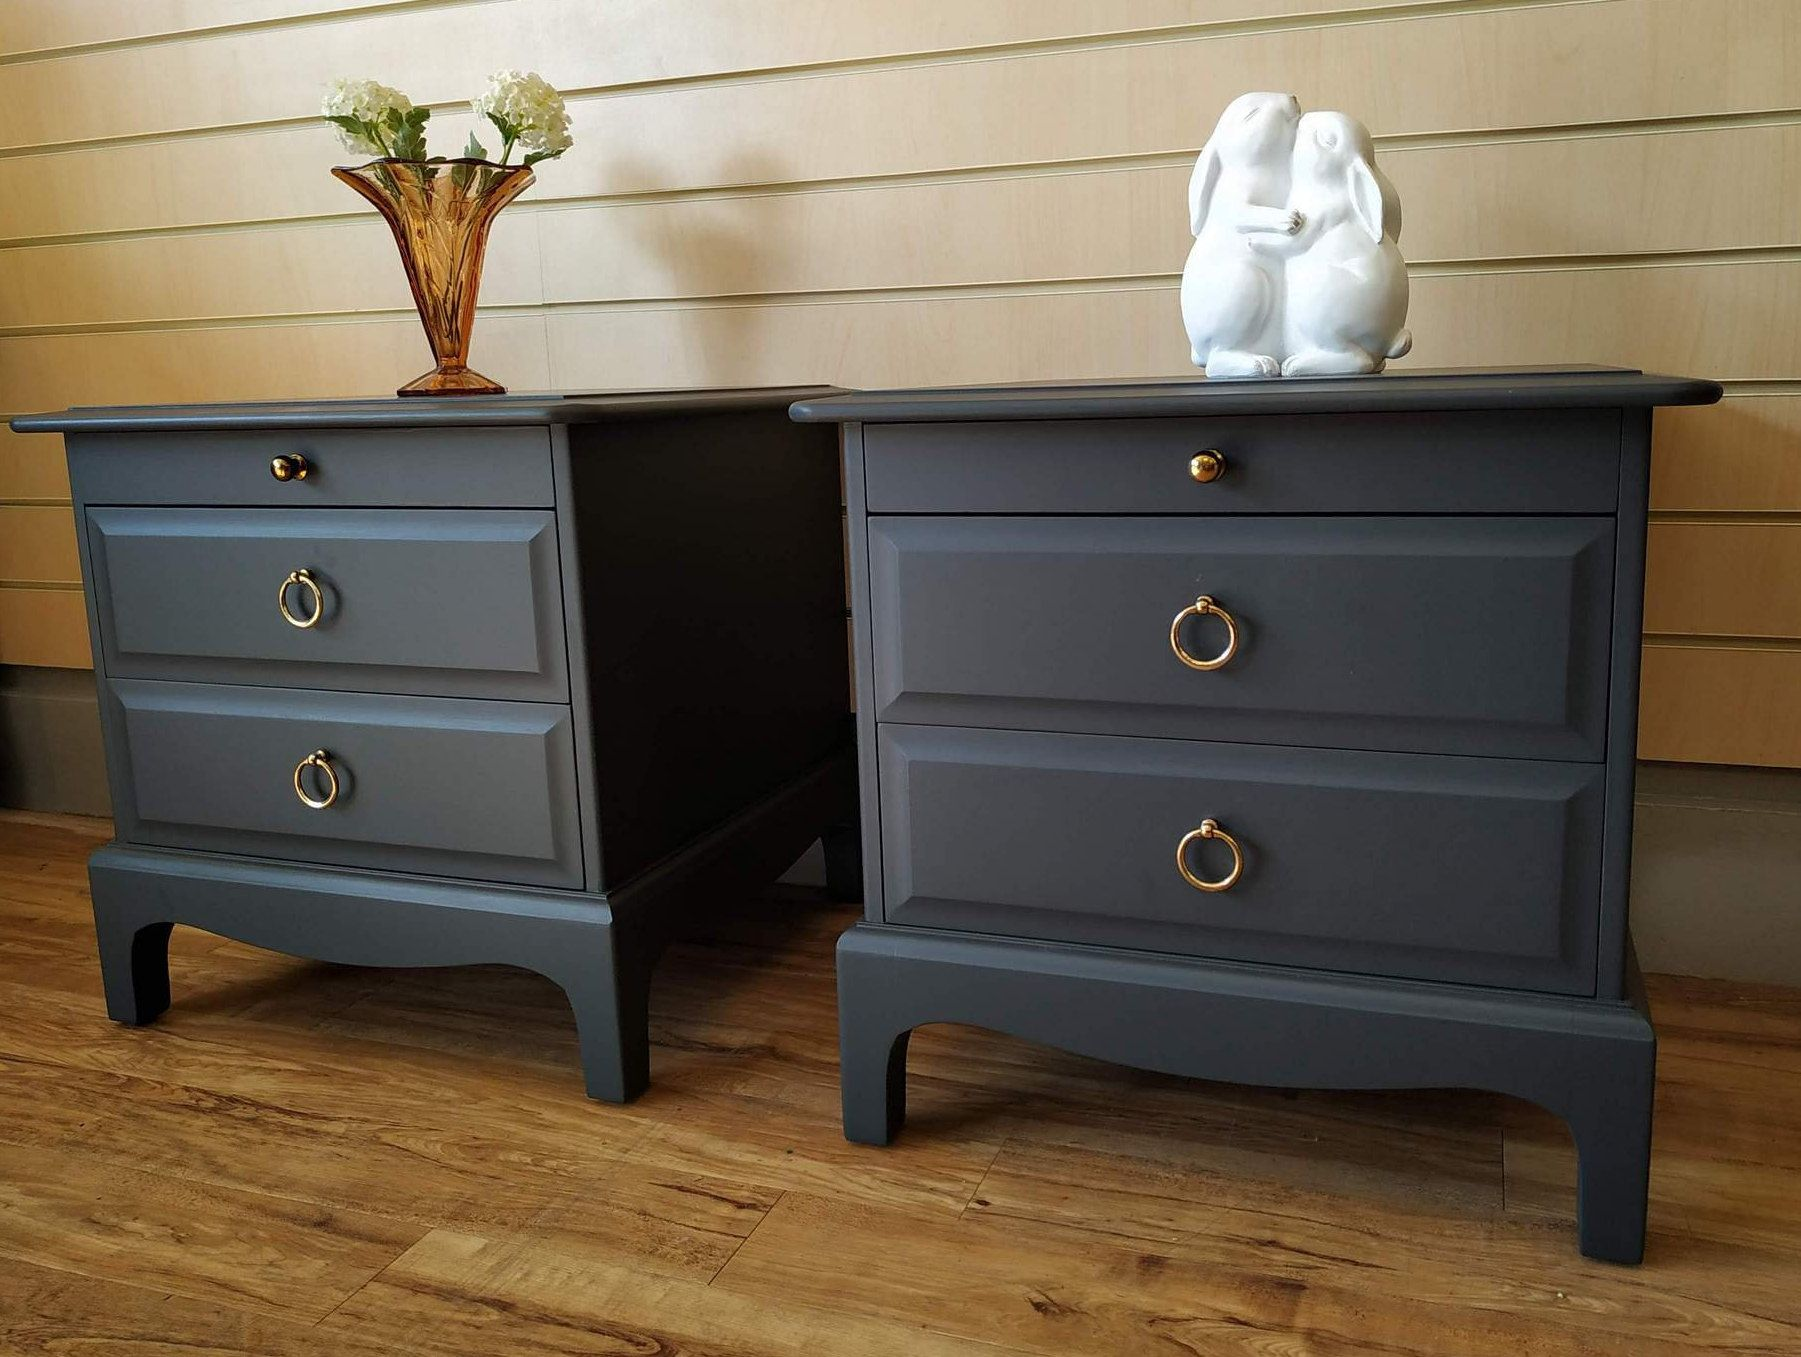 Sold Stag Minstrel Pair Vintage Retro Bedside Tables Cabinets